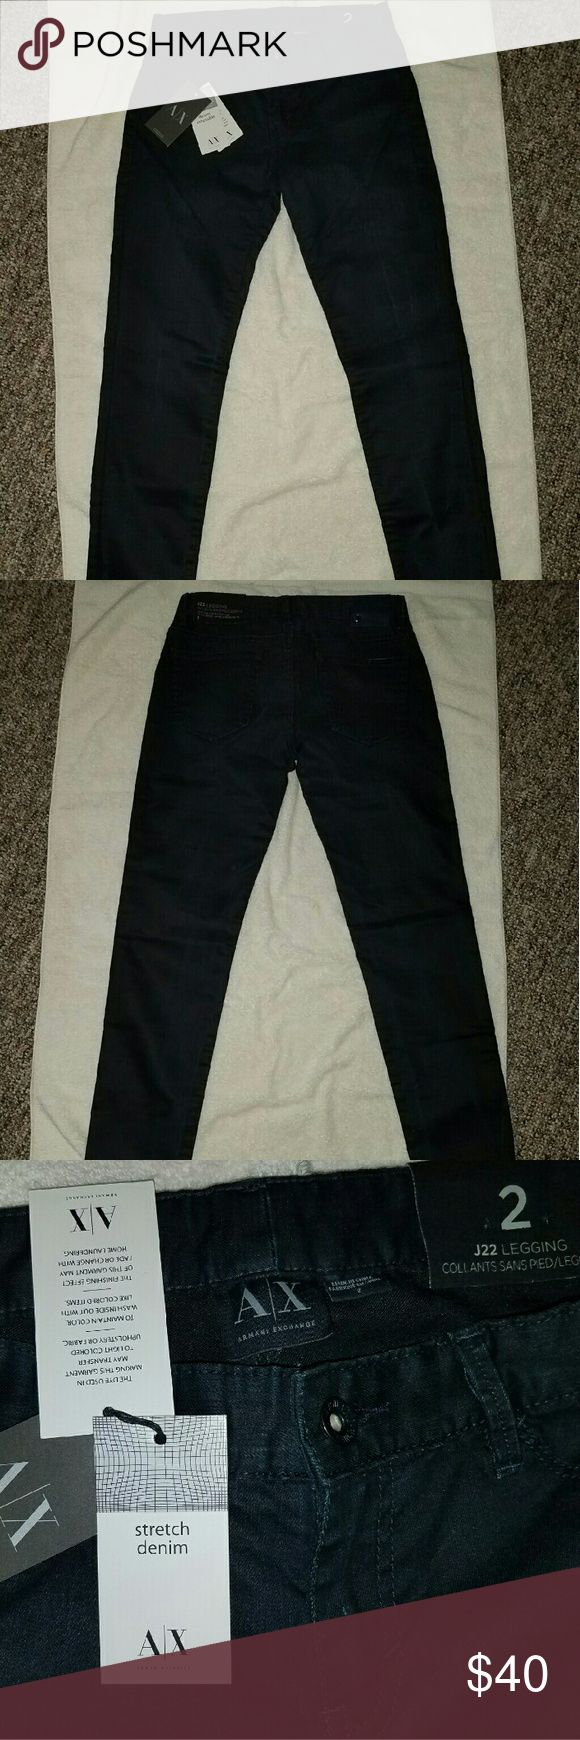 Armani Exchange stretch leggings pants These pants are brand new with tags/never worn. They are black color and are very very stretchy. Expendable denim leggings is what is indicated on the tag. No lowball offers.  No trades. Armani Exchange Pants Leggings